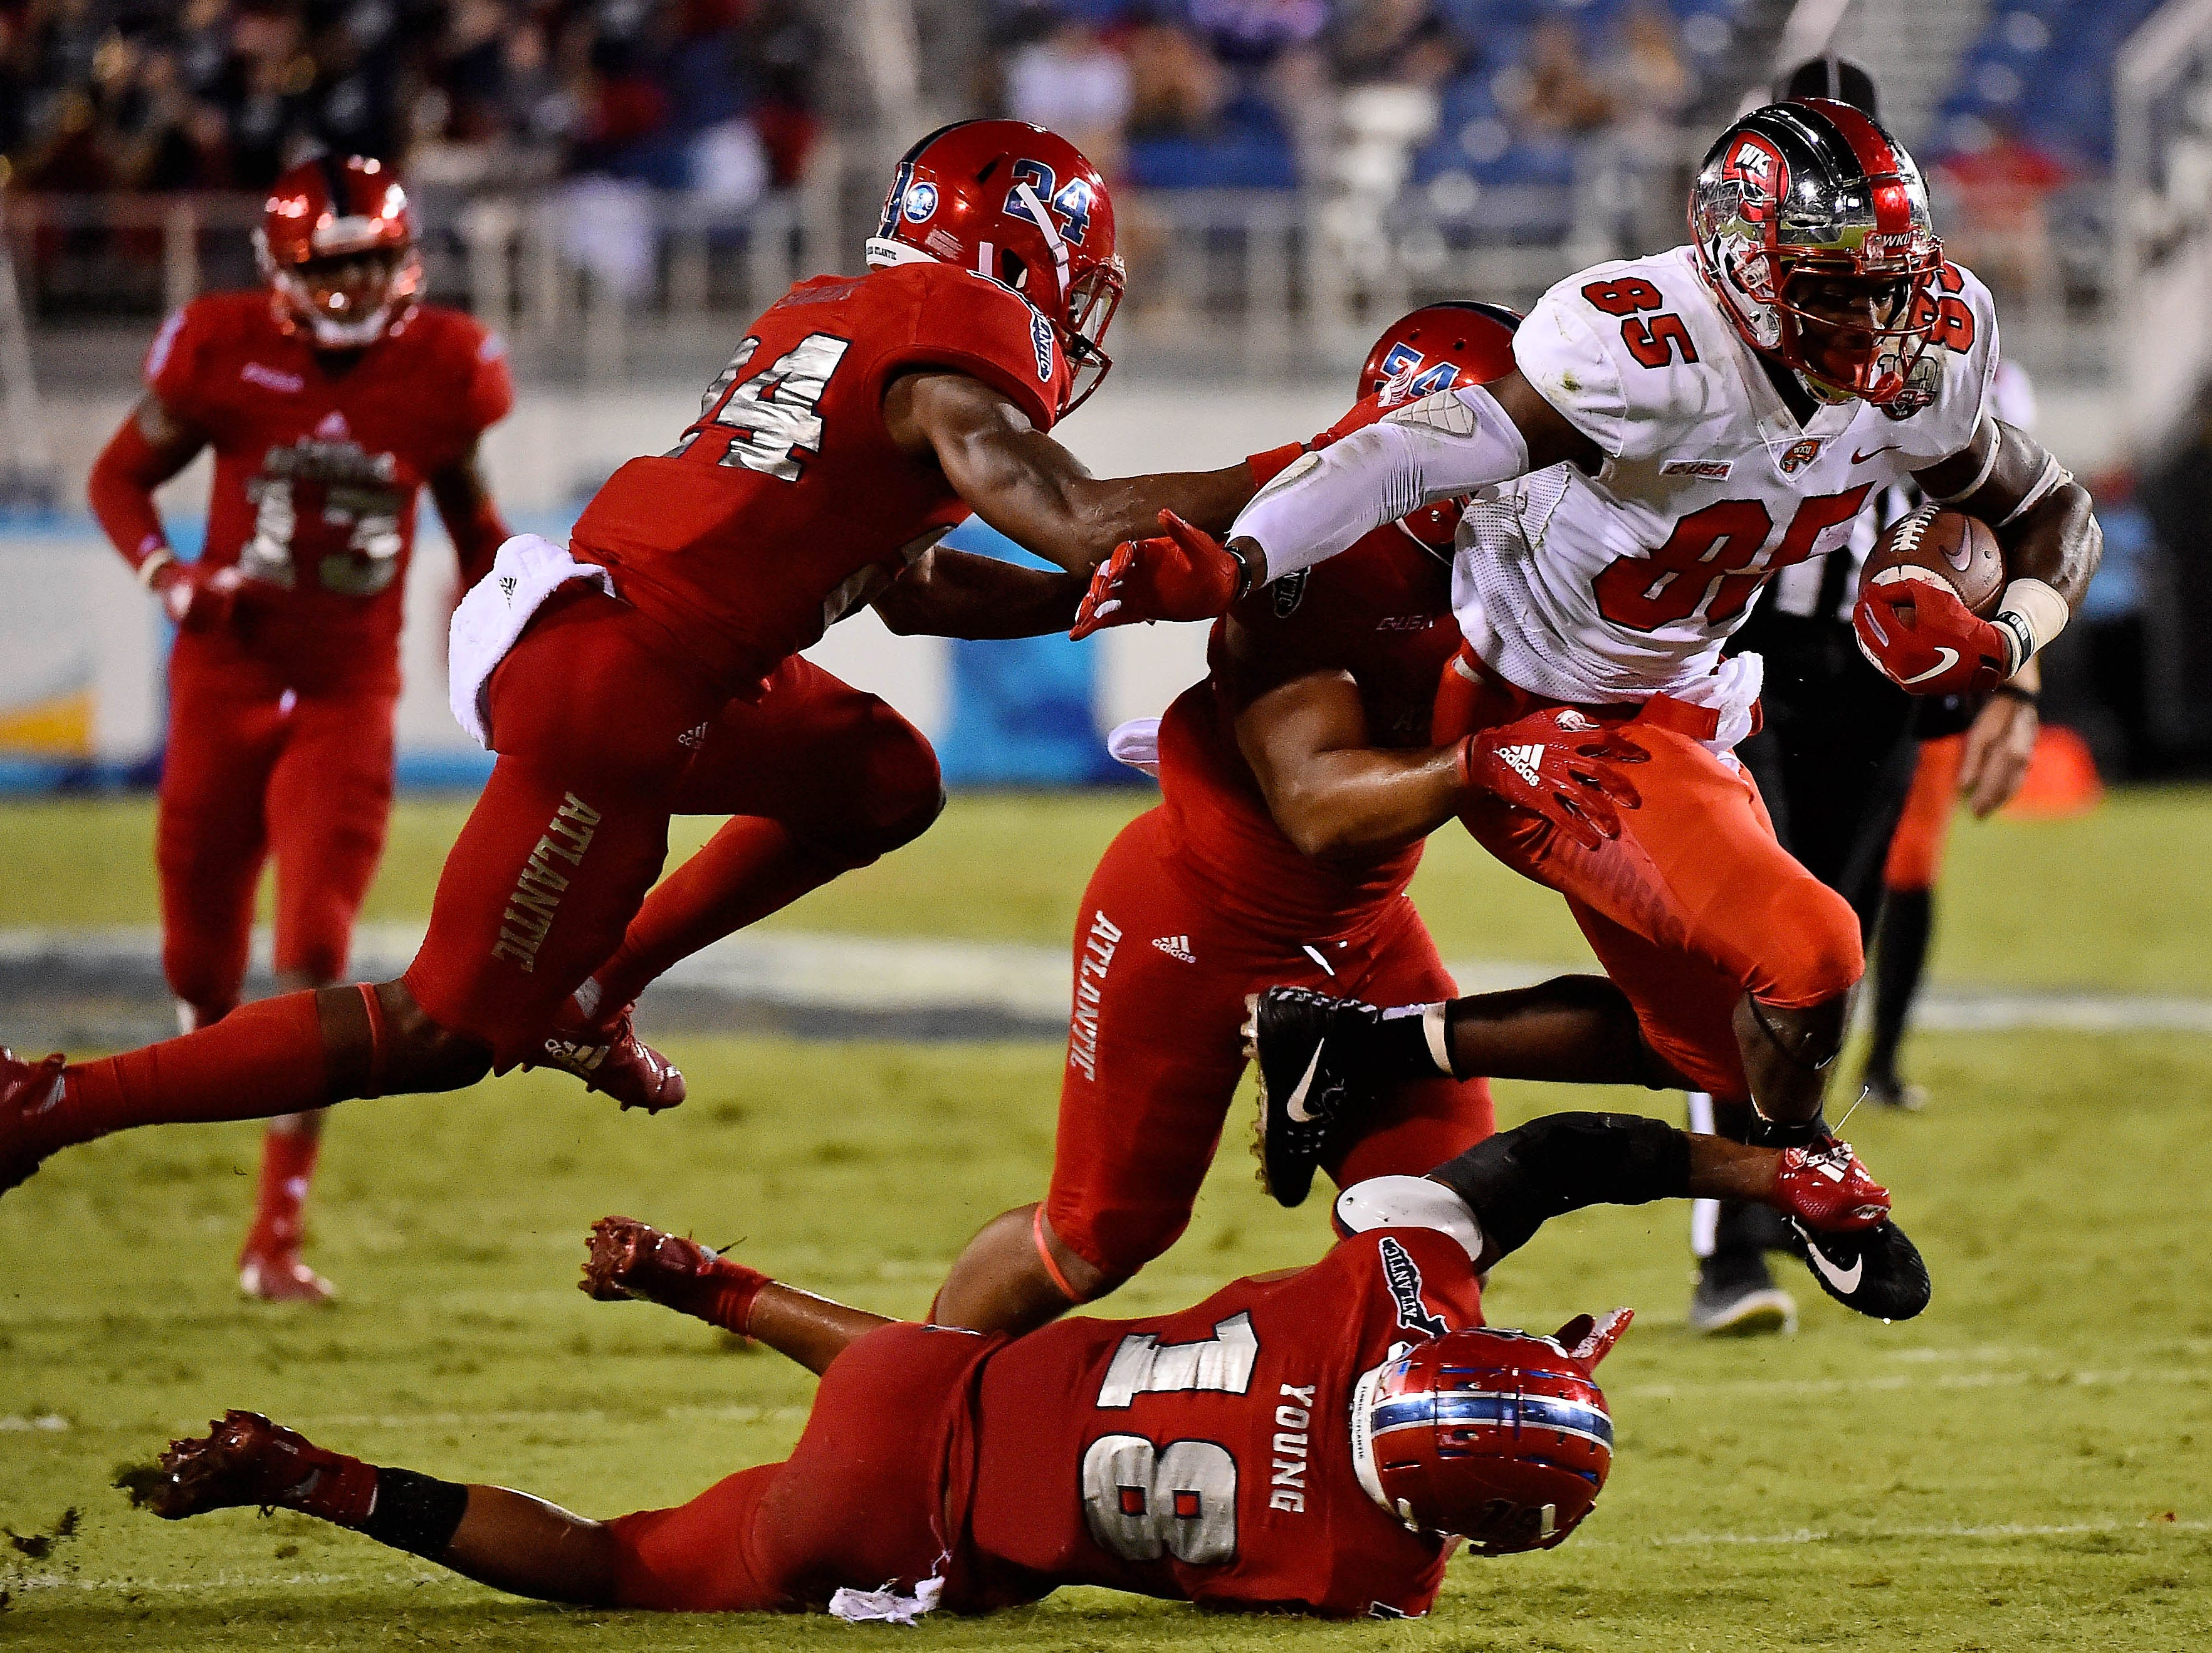 Western Kentucky Hilltoppers tight end Mik'Quan Deane (85) leaps over Florida Atlantic Owls safety Jalen Young (18) during the second half at FAU Football Stadium.